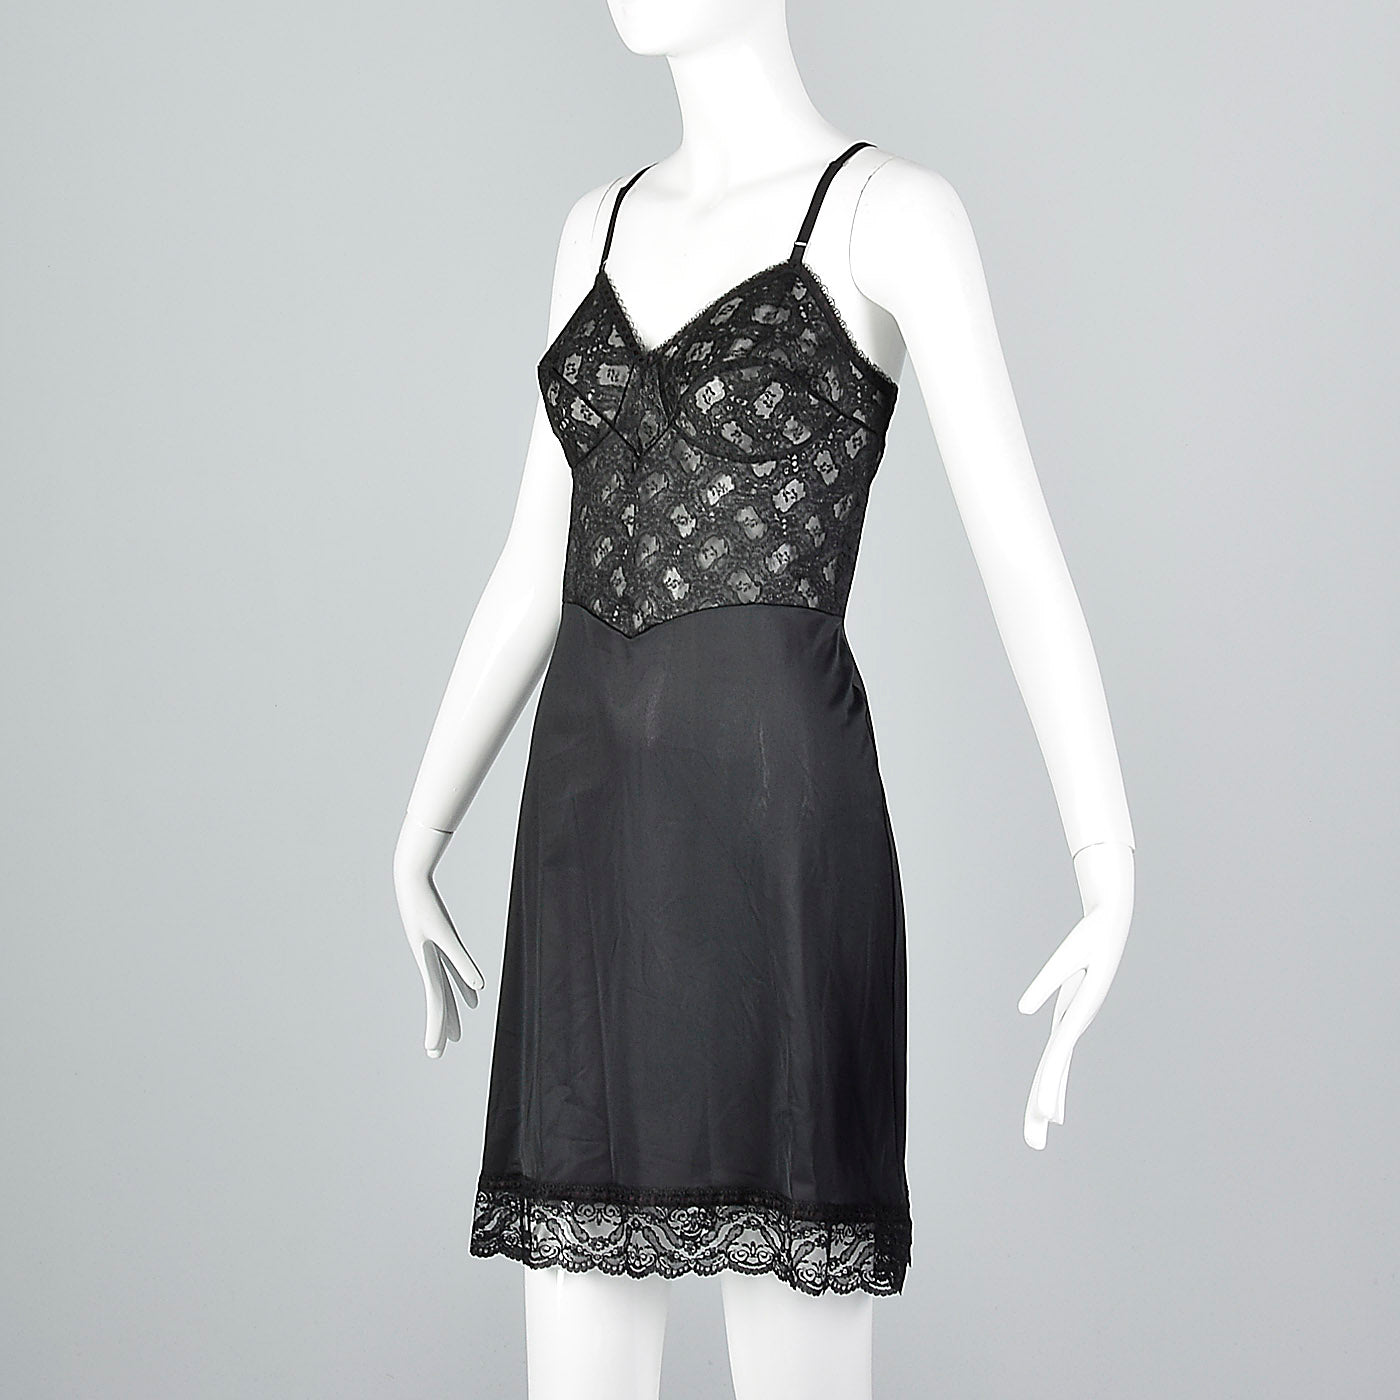 1950s Black Full Slip with Shaped Cups and Lace Bodice